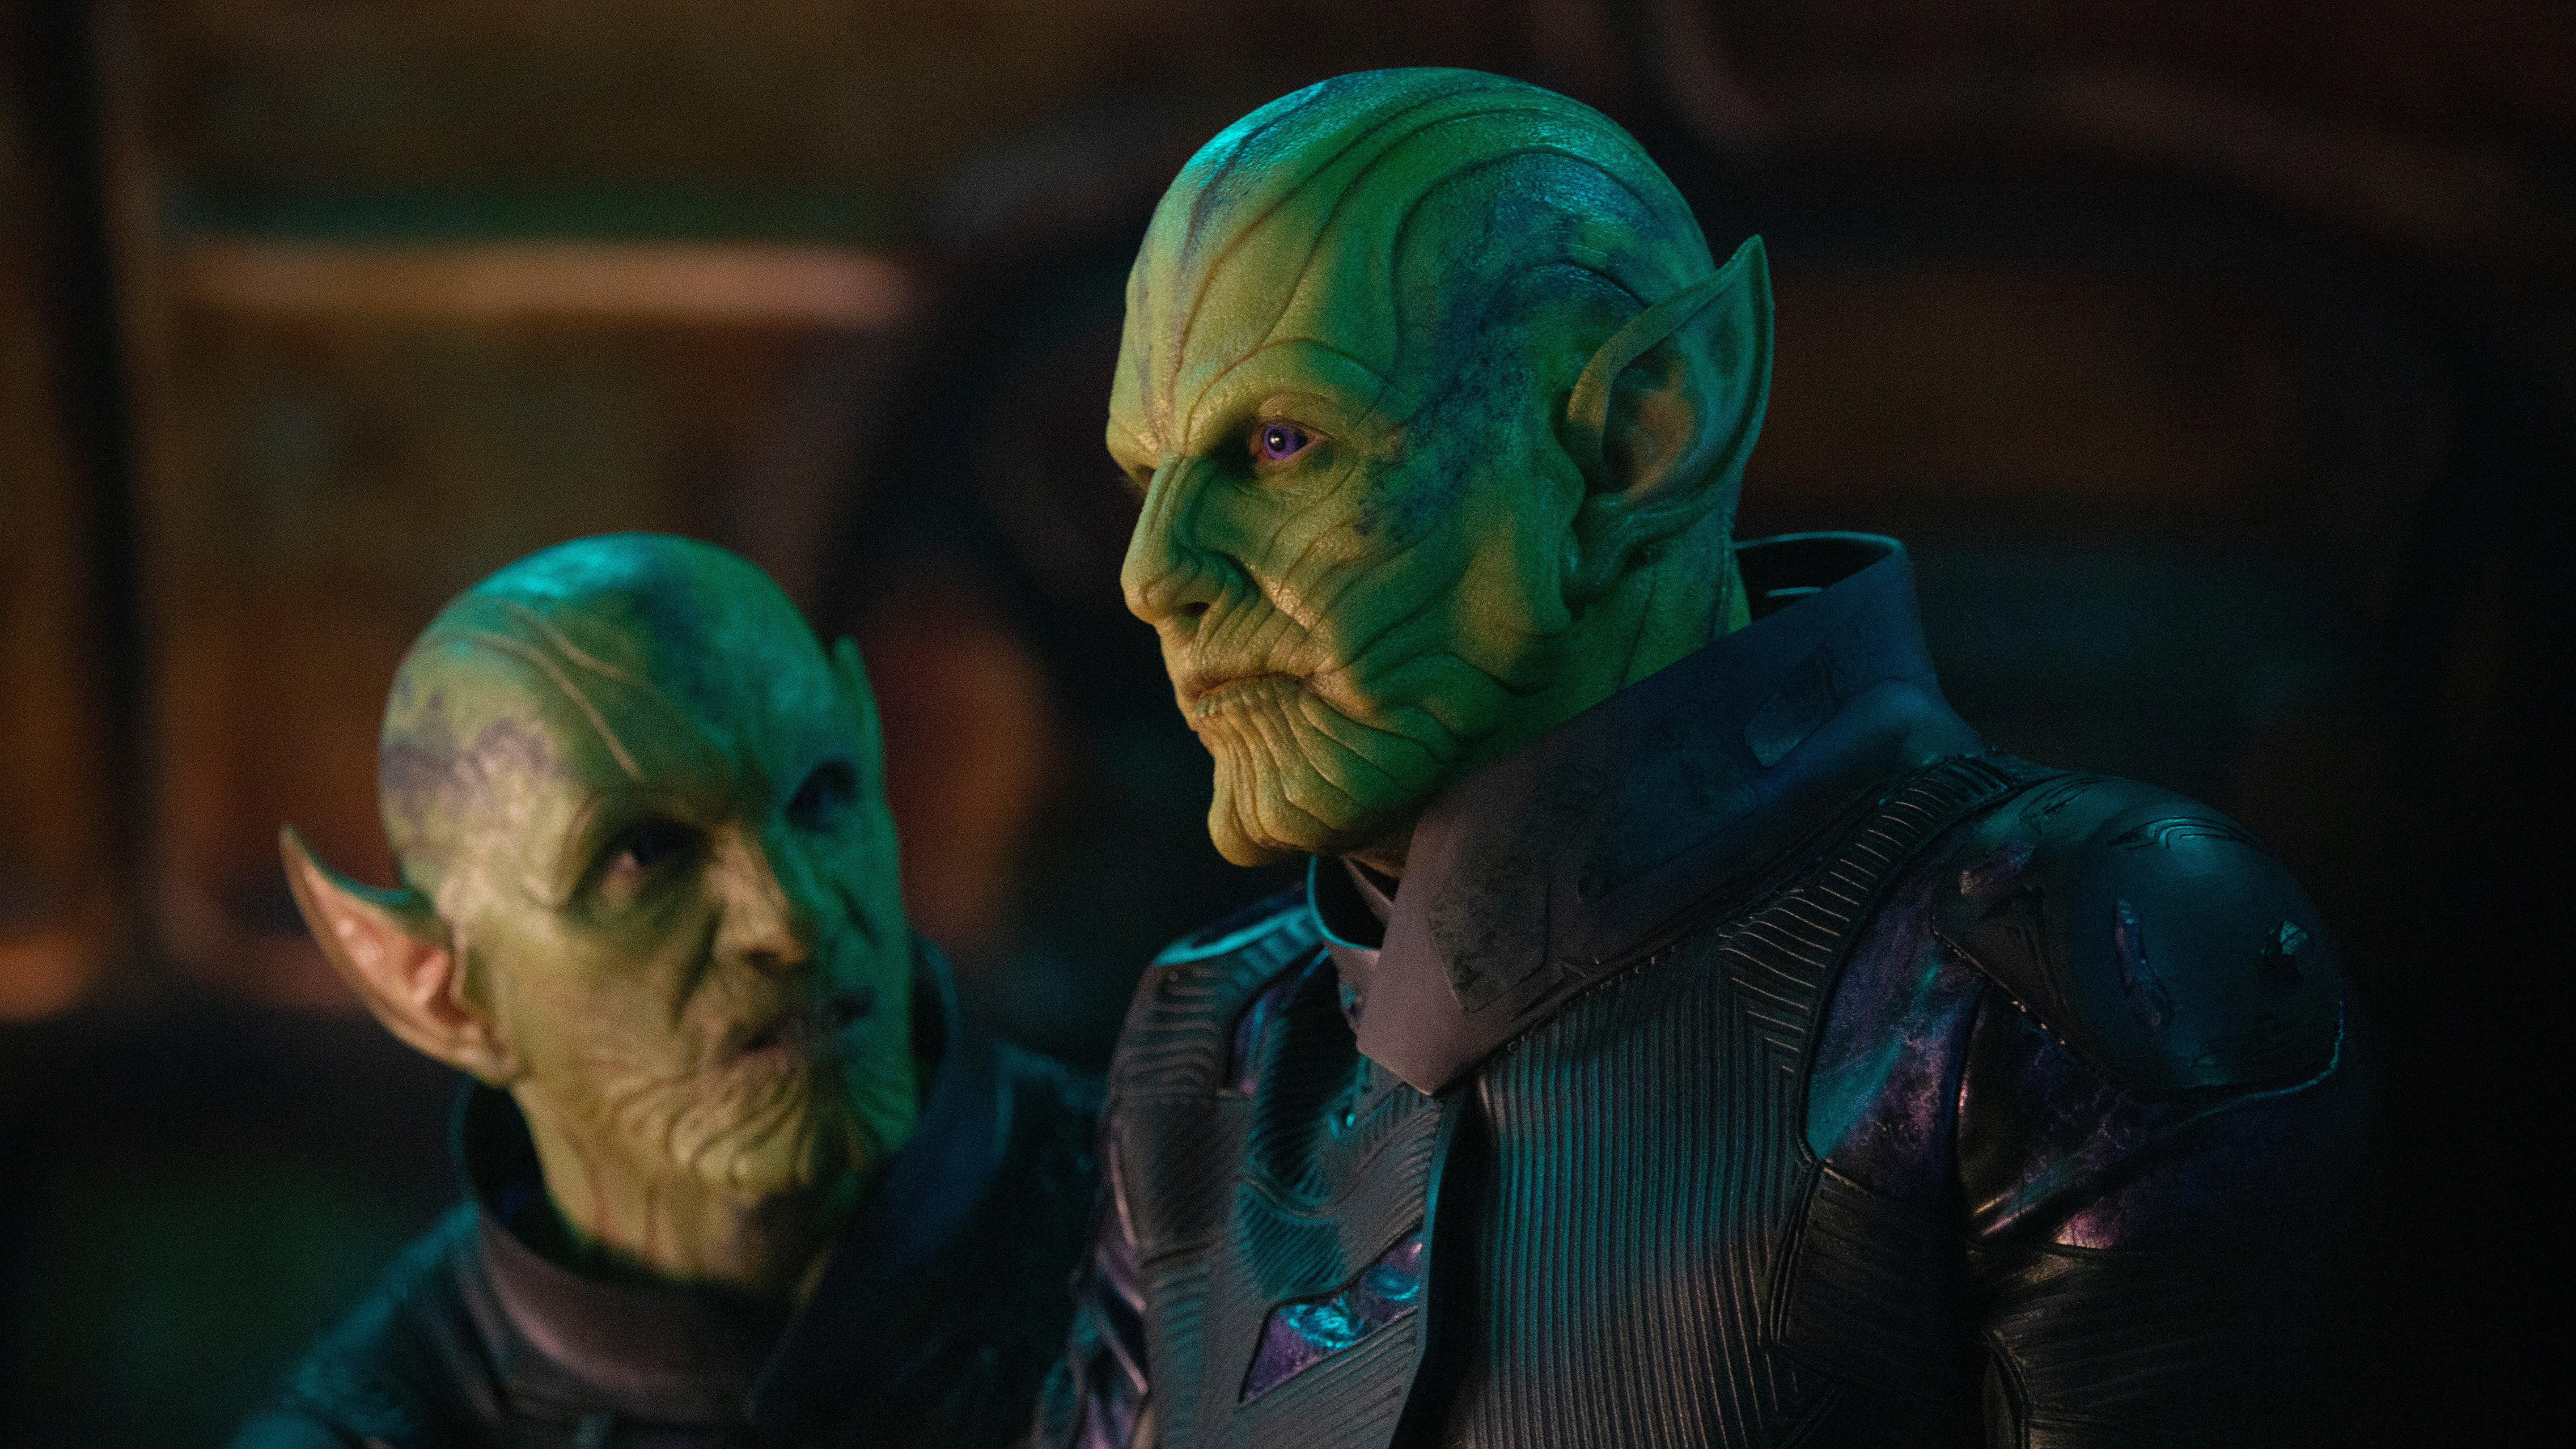 Captain Marvel's Cat Actors Had Trouble Performing With The Skrulls